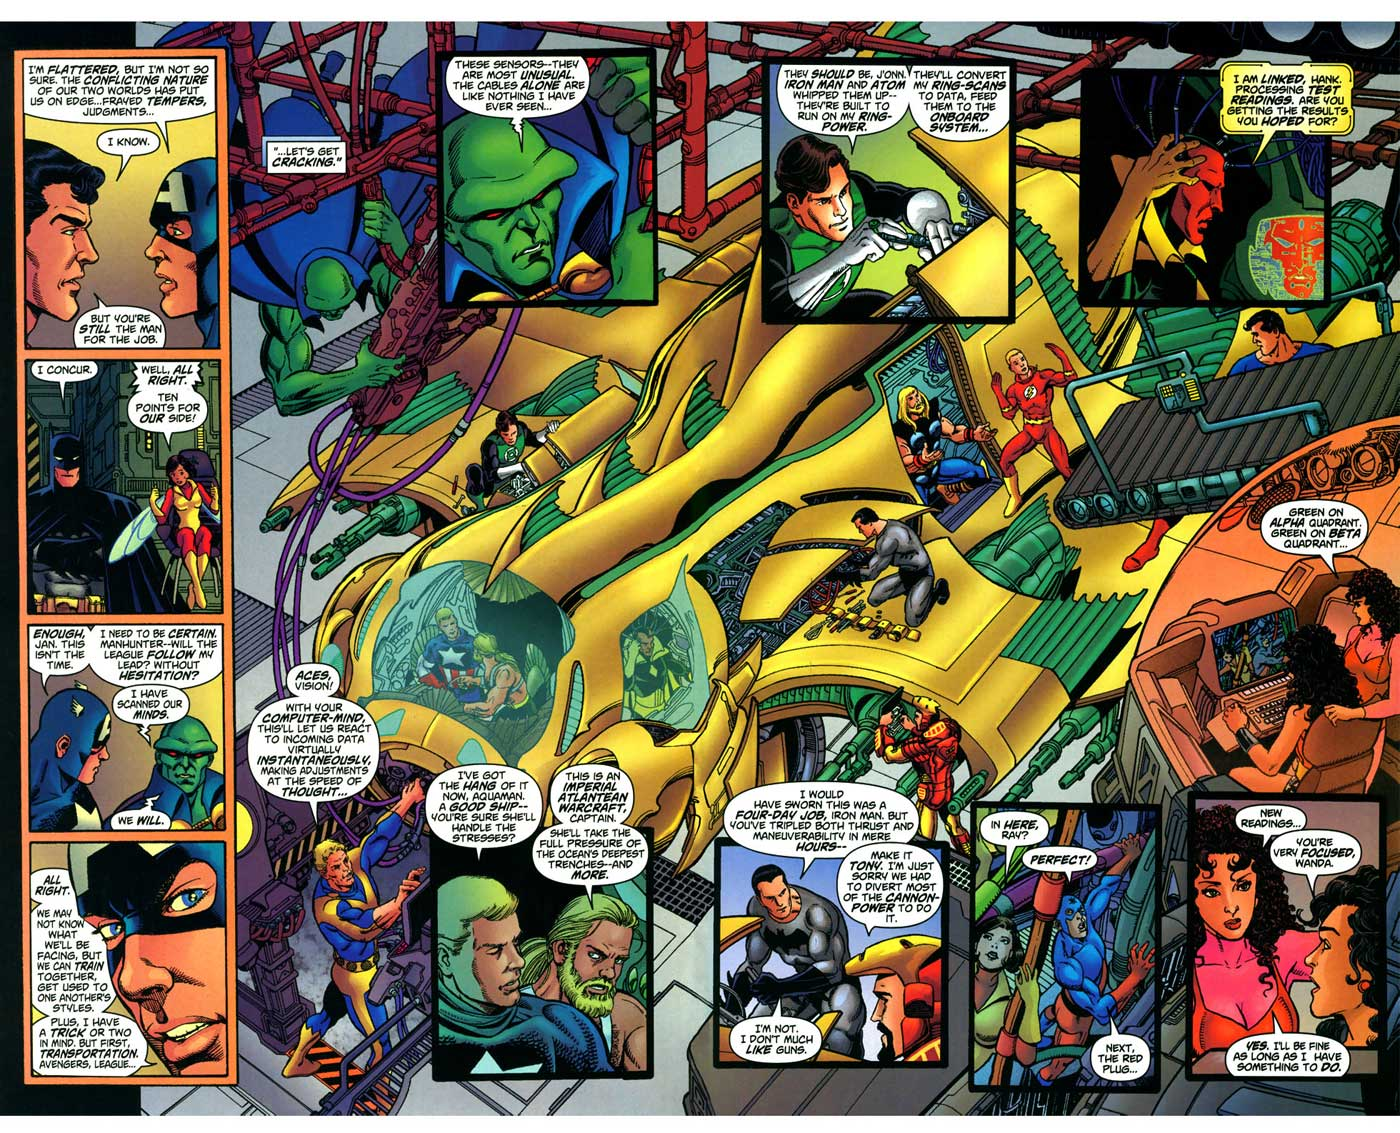 George Perez on JLA/Avengers #4